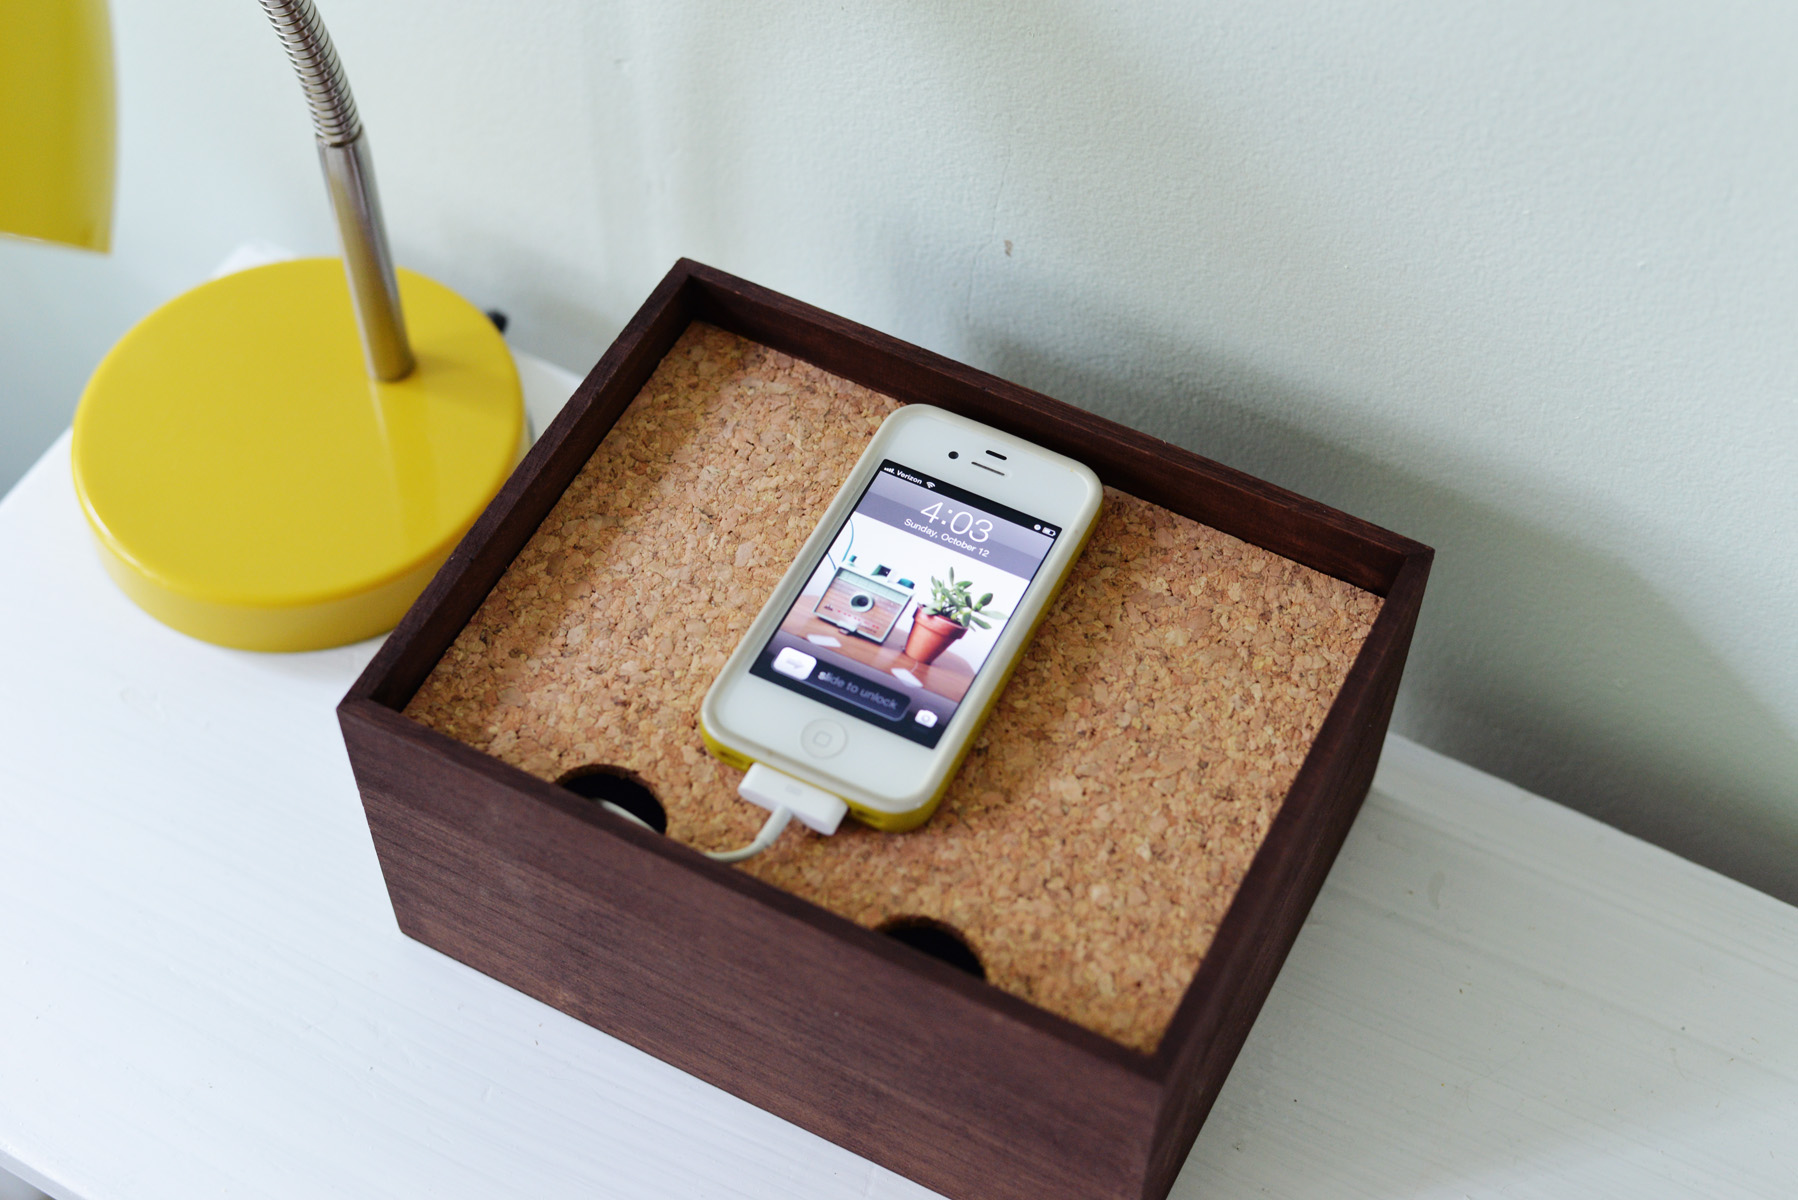 diy charging dock. Black Bedroom Furniture Sets. Home Design Ideas